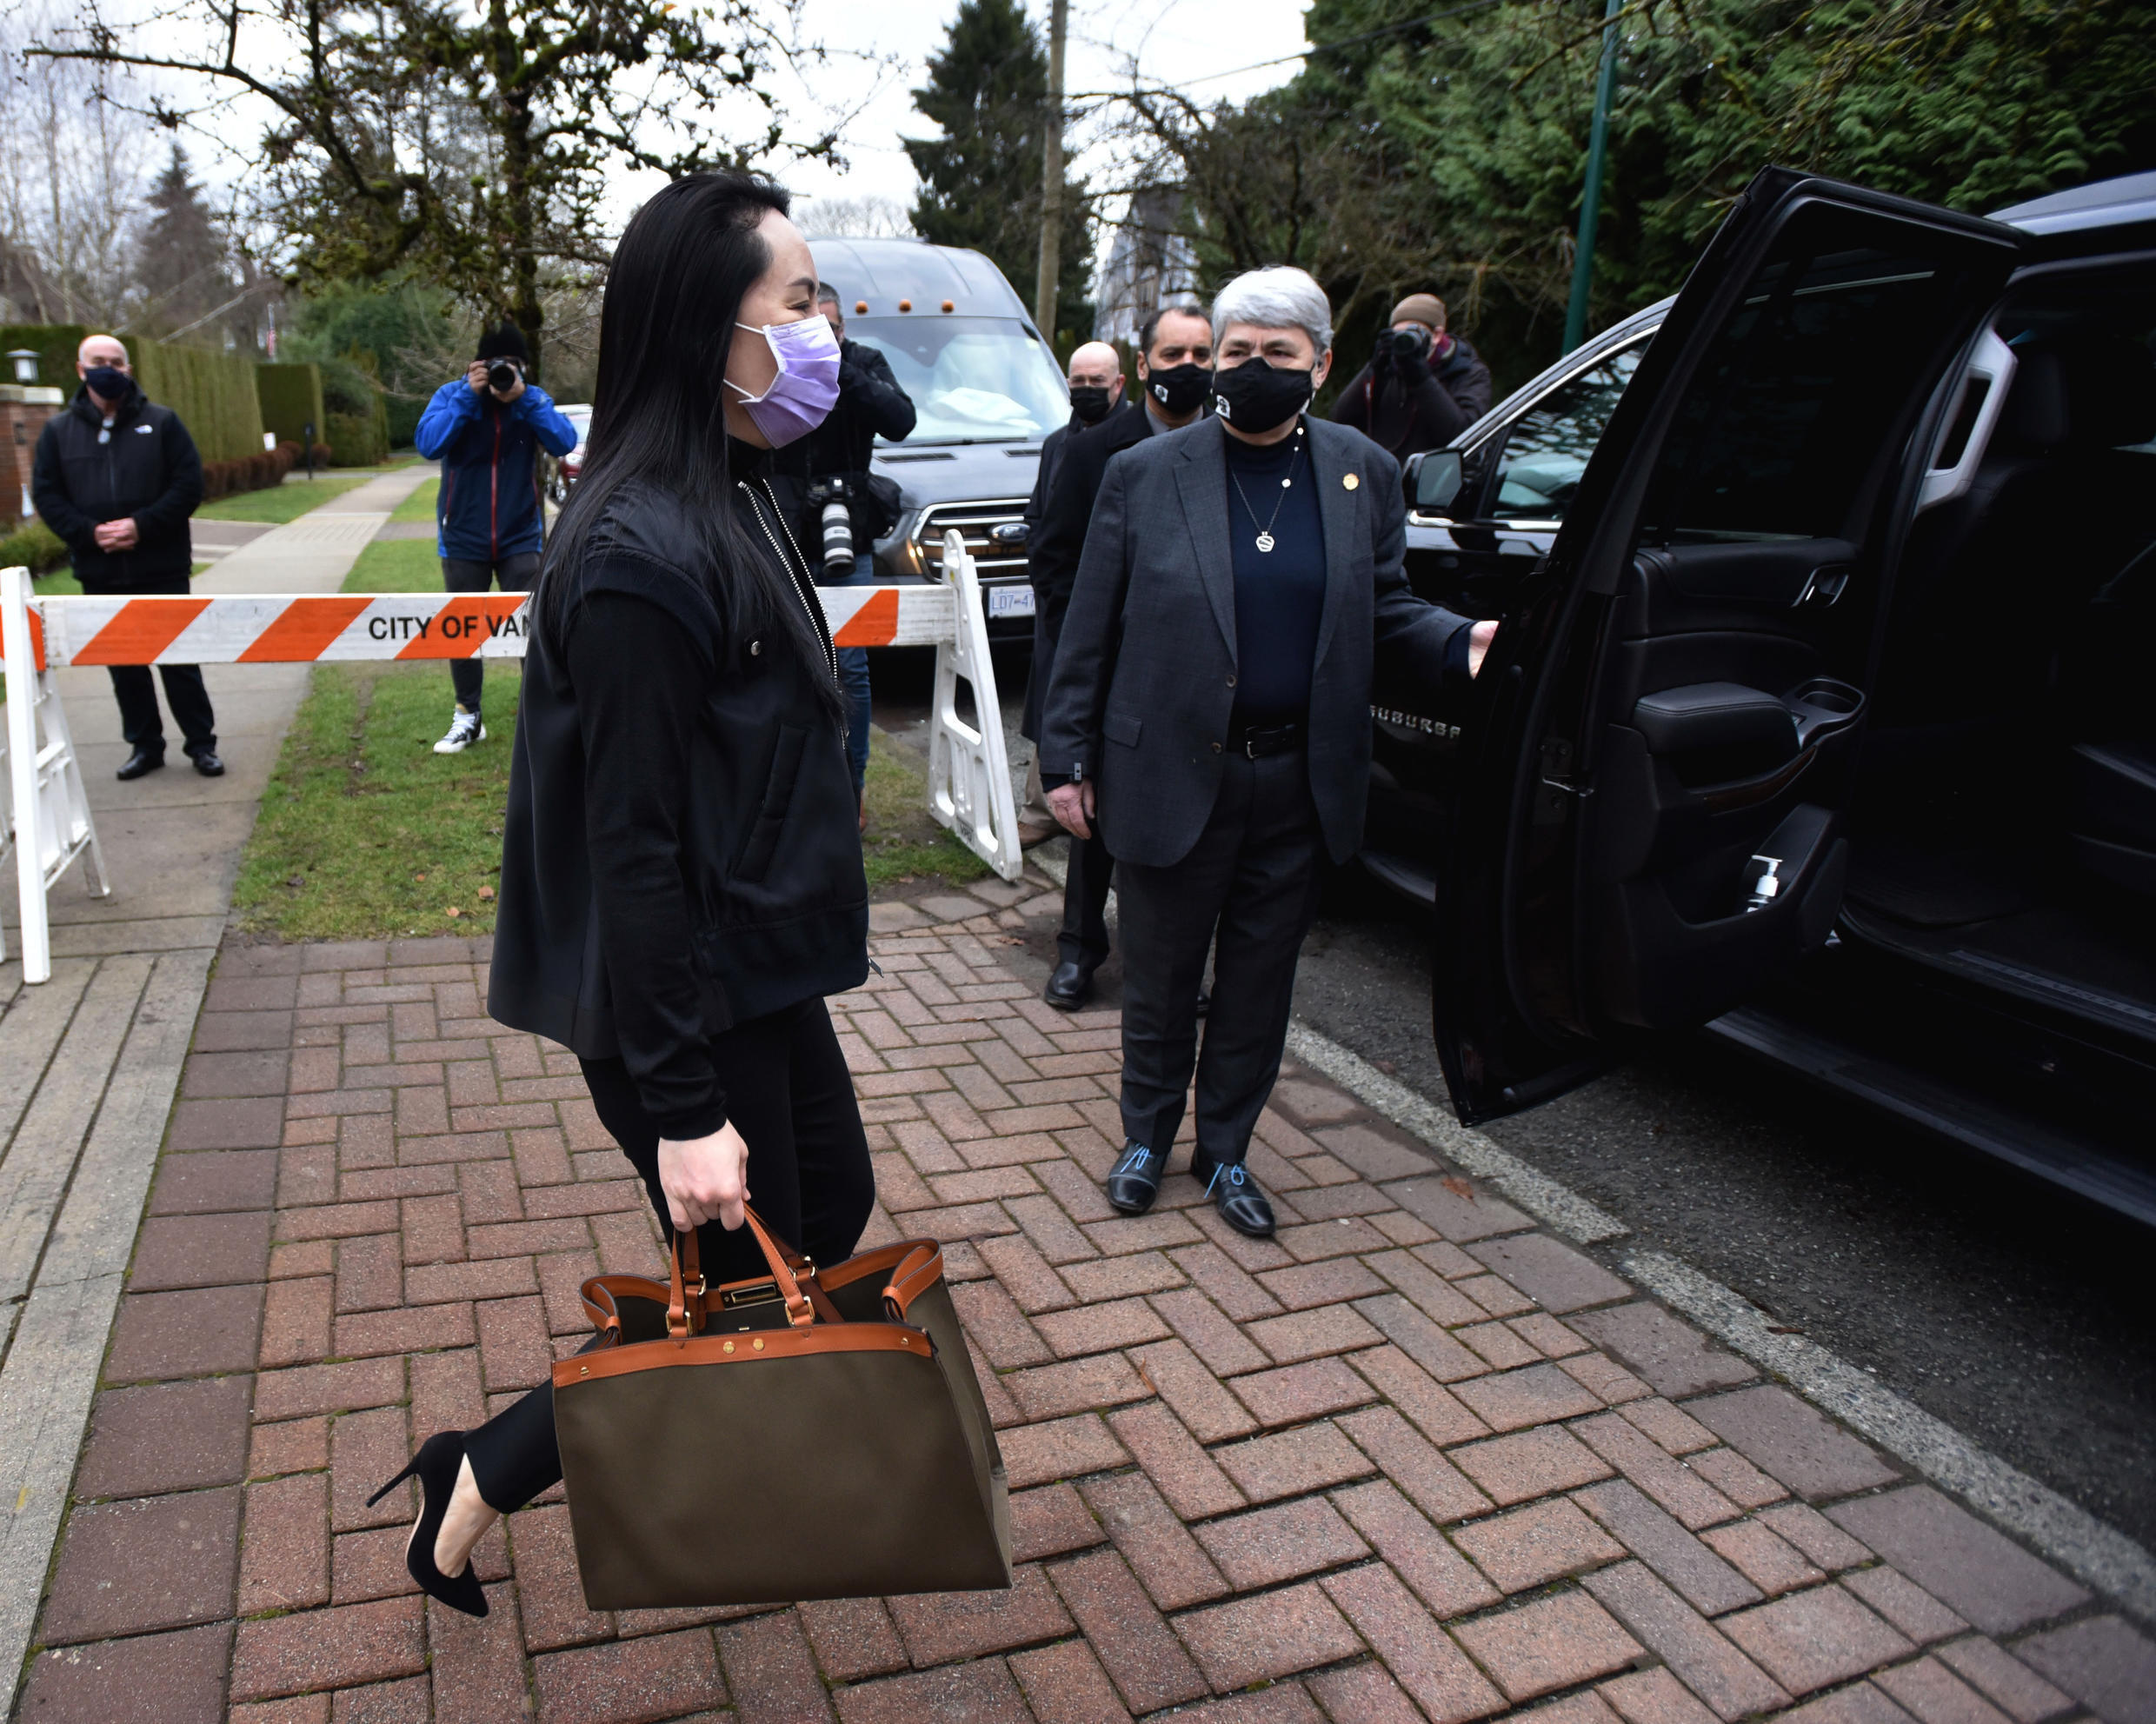 Huawei chief financial officer Meng Wanzhou leaves her Vancouver home for court. A Canadian judge rejected her request to relax her bail conditions